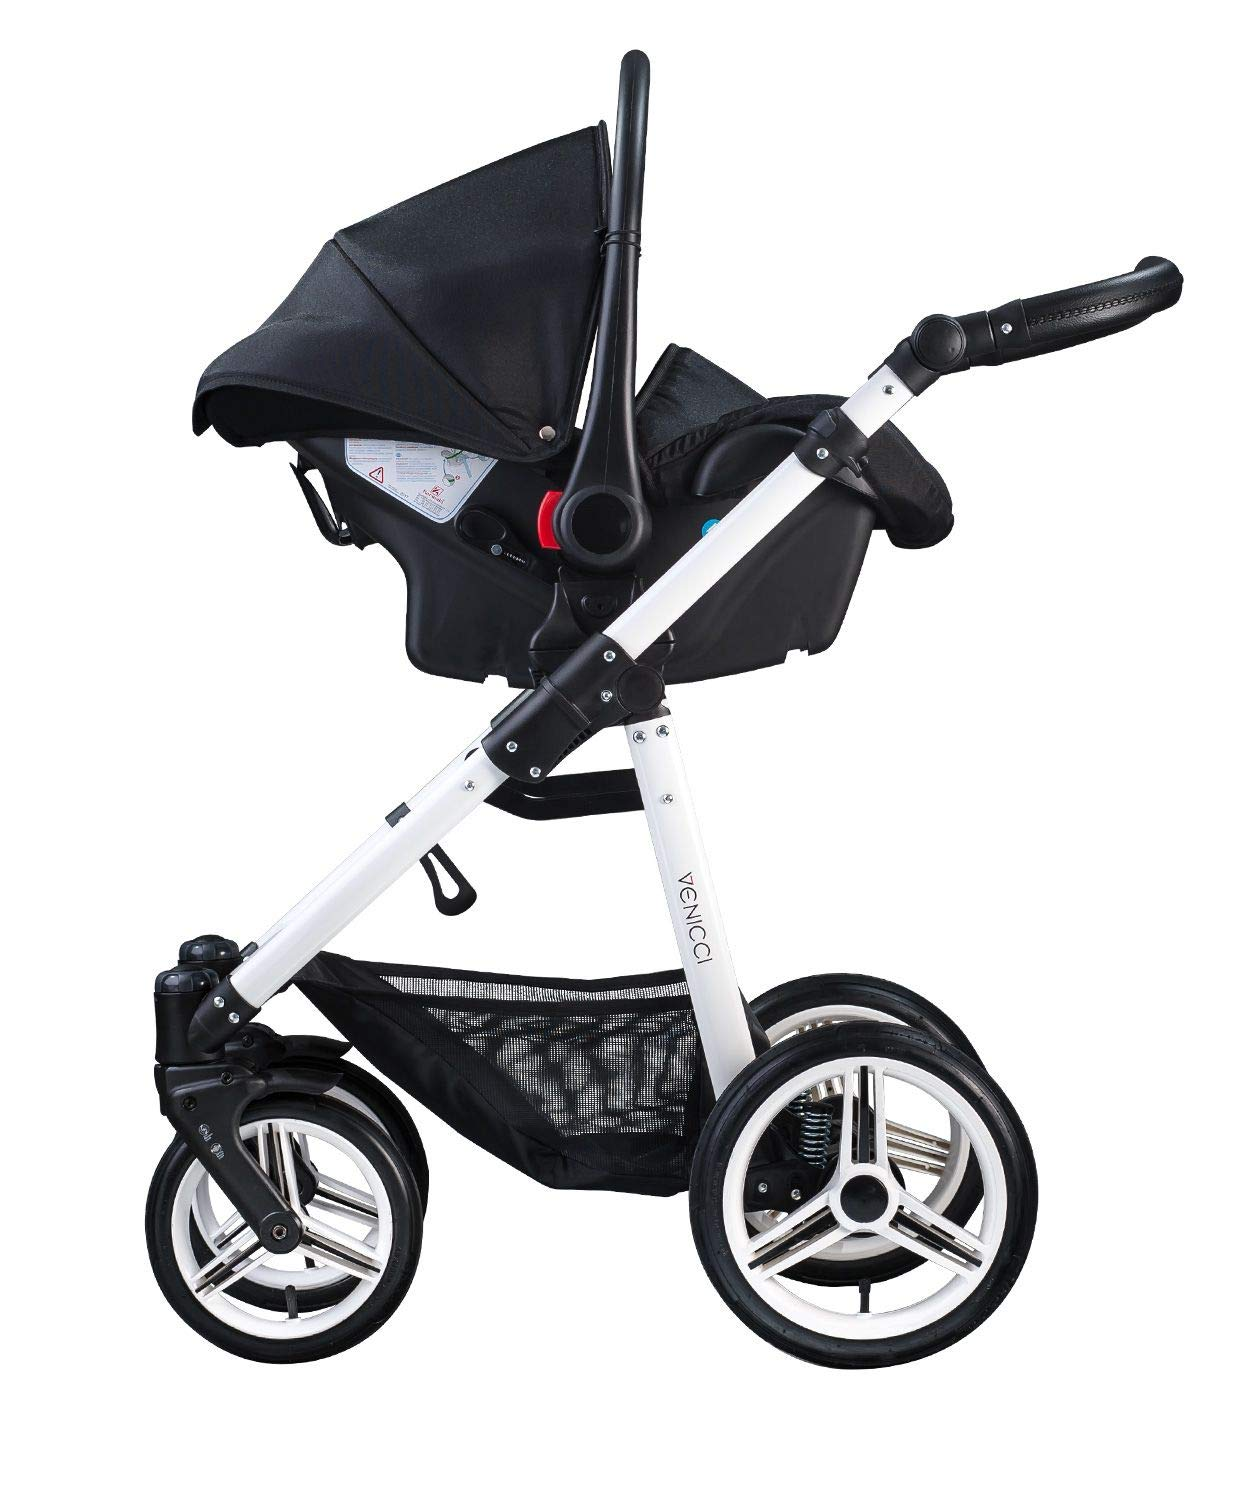 Venicci Soft Vento 3-in-1 Travel System - Black/White - with Carrycot + Car Seat + Changing Bag + Footmuff + Raincover + Mosquito Net + 5-Point Harness and UV 50+ Fabric + Car Seat Adapters  3 in 1 Travel System with included Group 0+ Car Seat Suitable for your baby from birth until 36 months 5-point harness to enhance the safety of your child 4